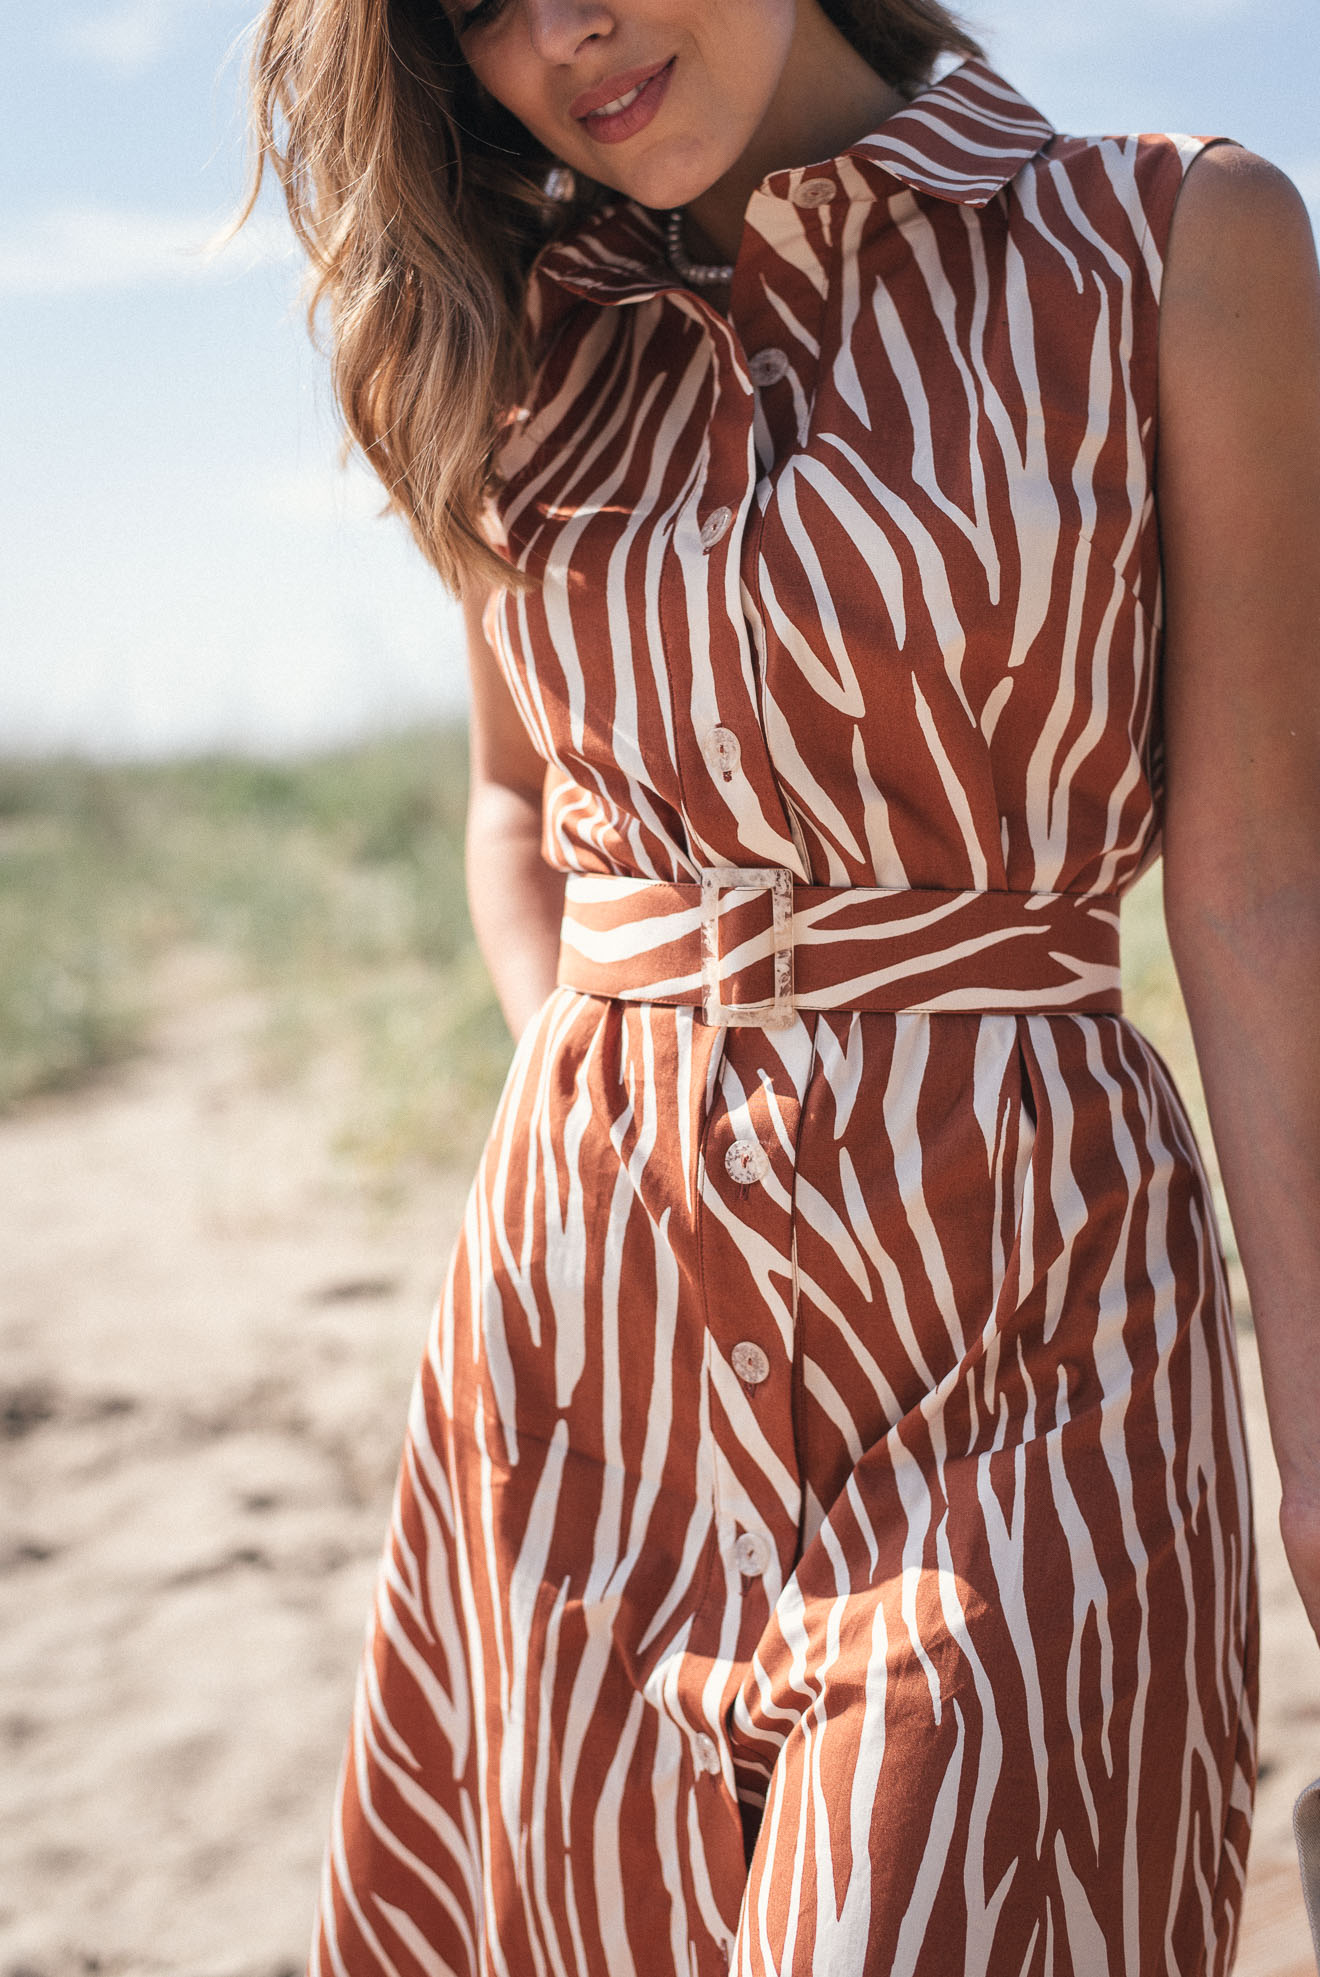 Beach style dress from Denina Martin Collection